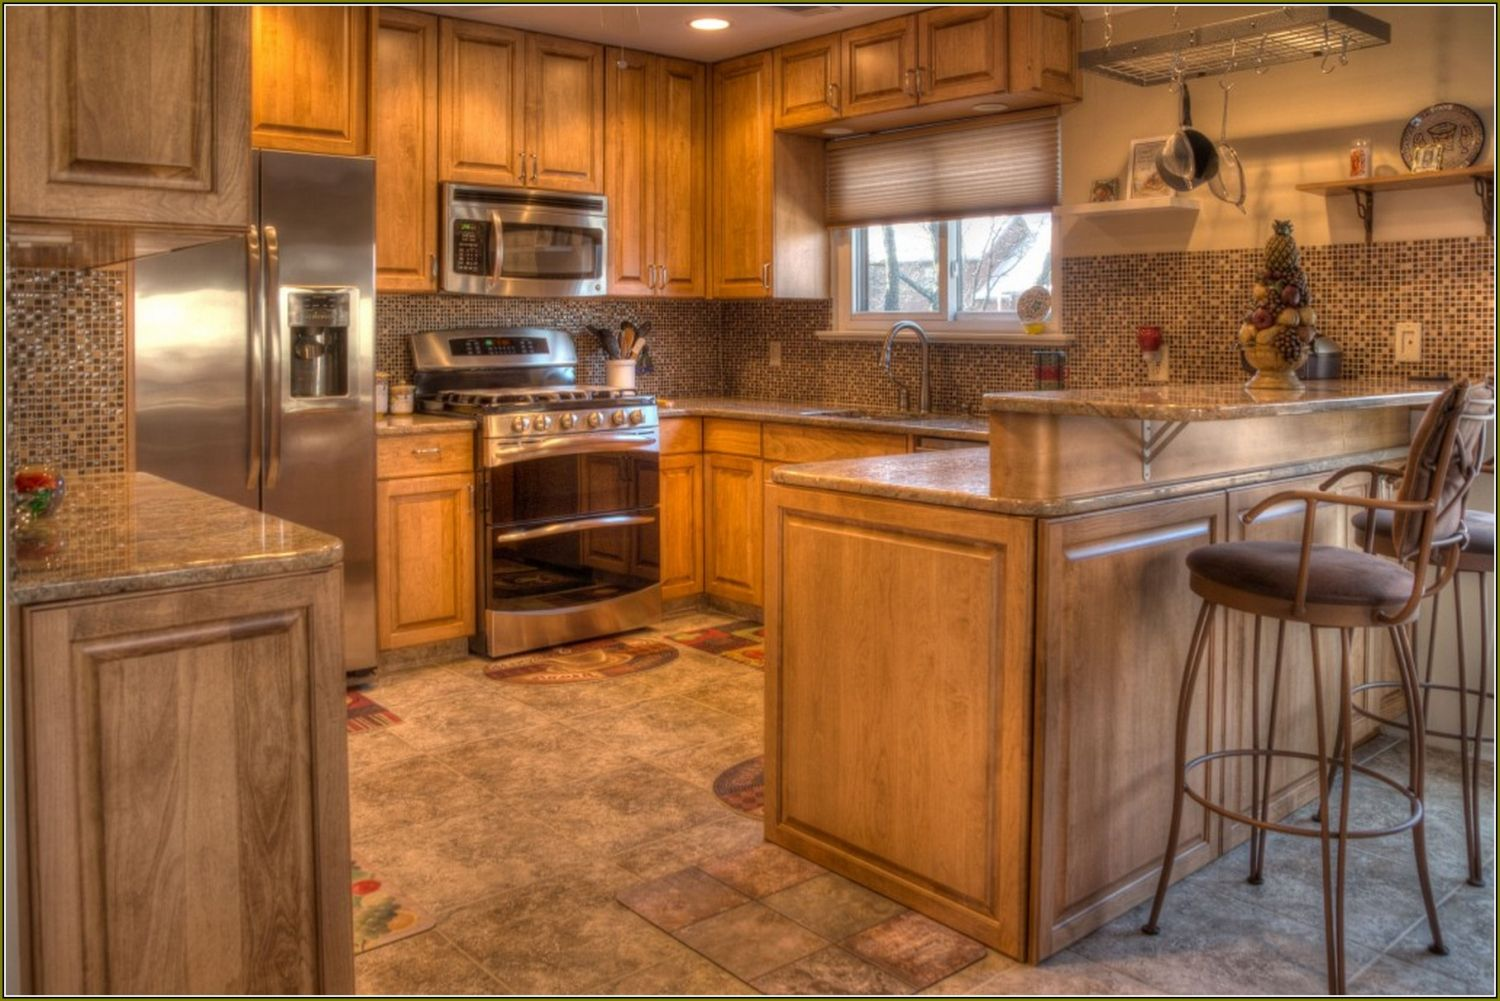 Staten Island Kitchen Cabinets All Wood Hardwood Floors In Kitchen Discount Kitchen Cabinets Kitchen Remodel